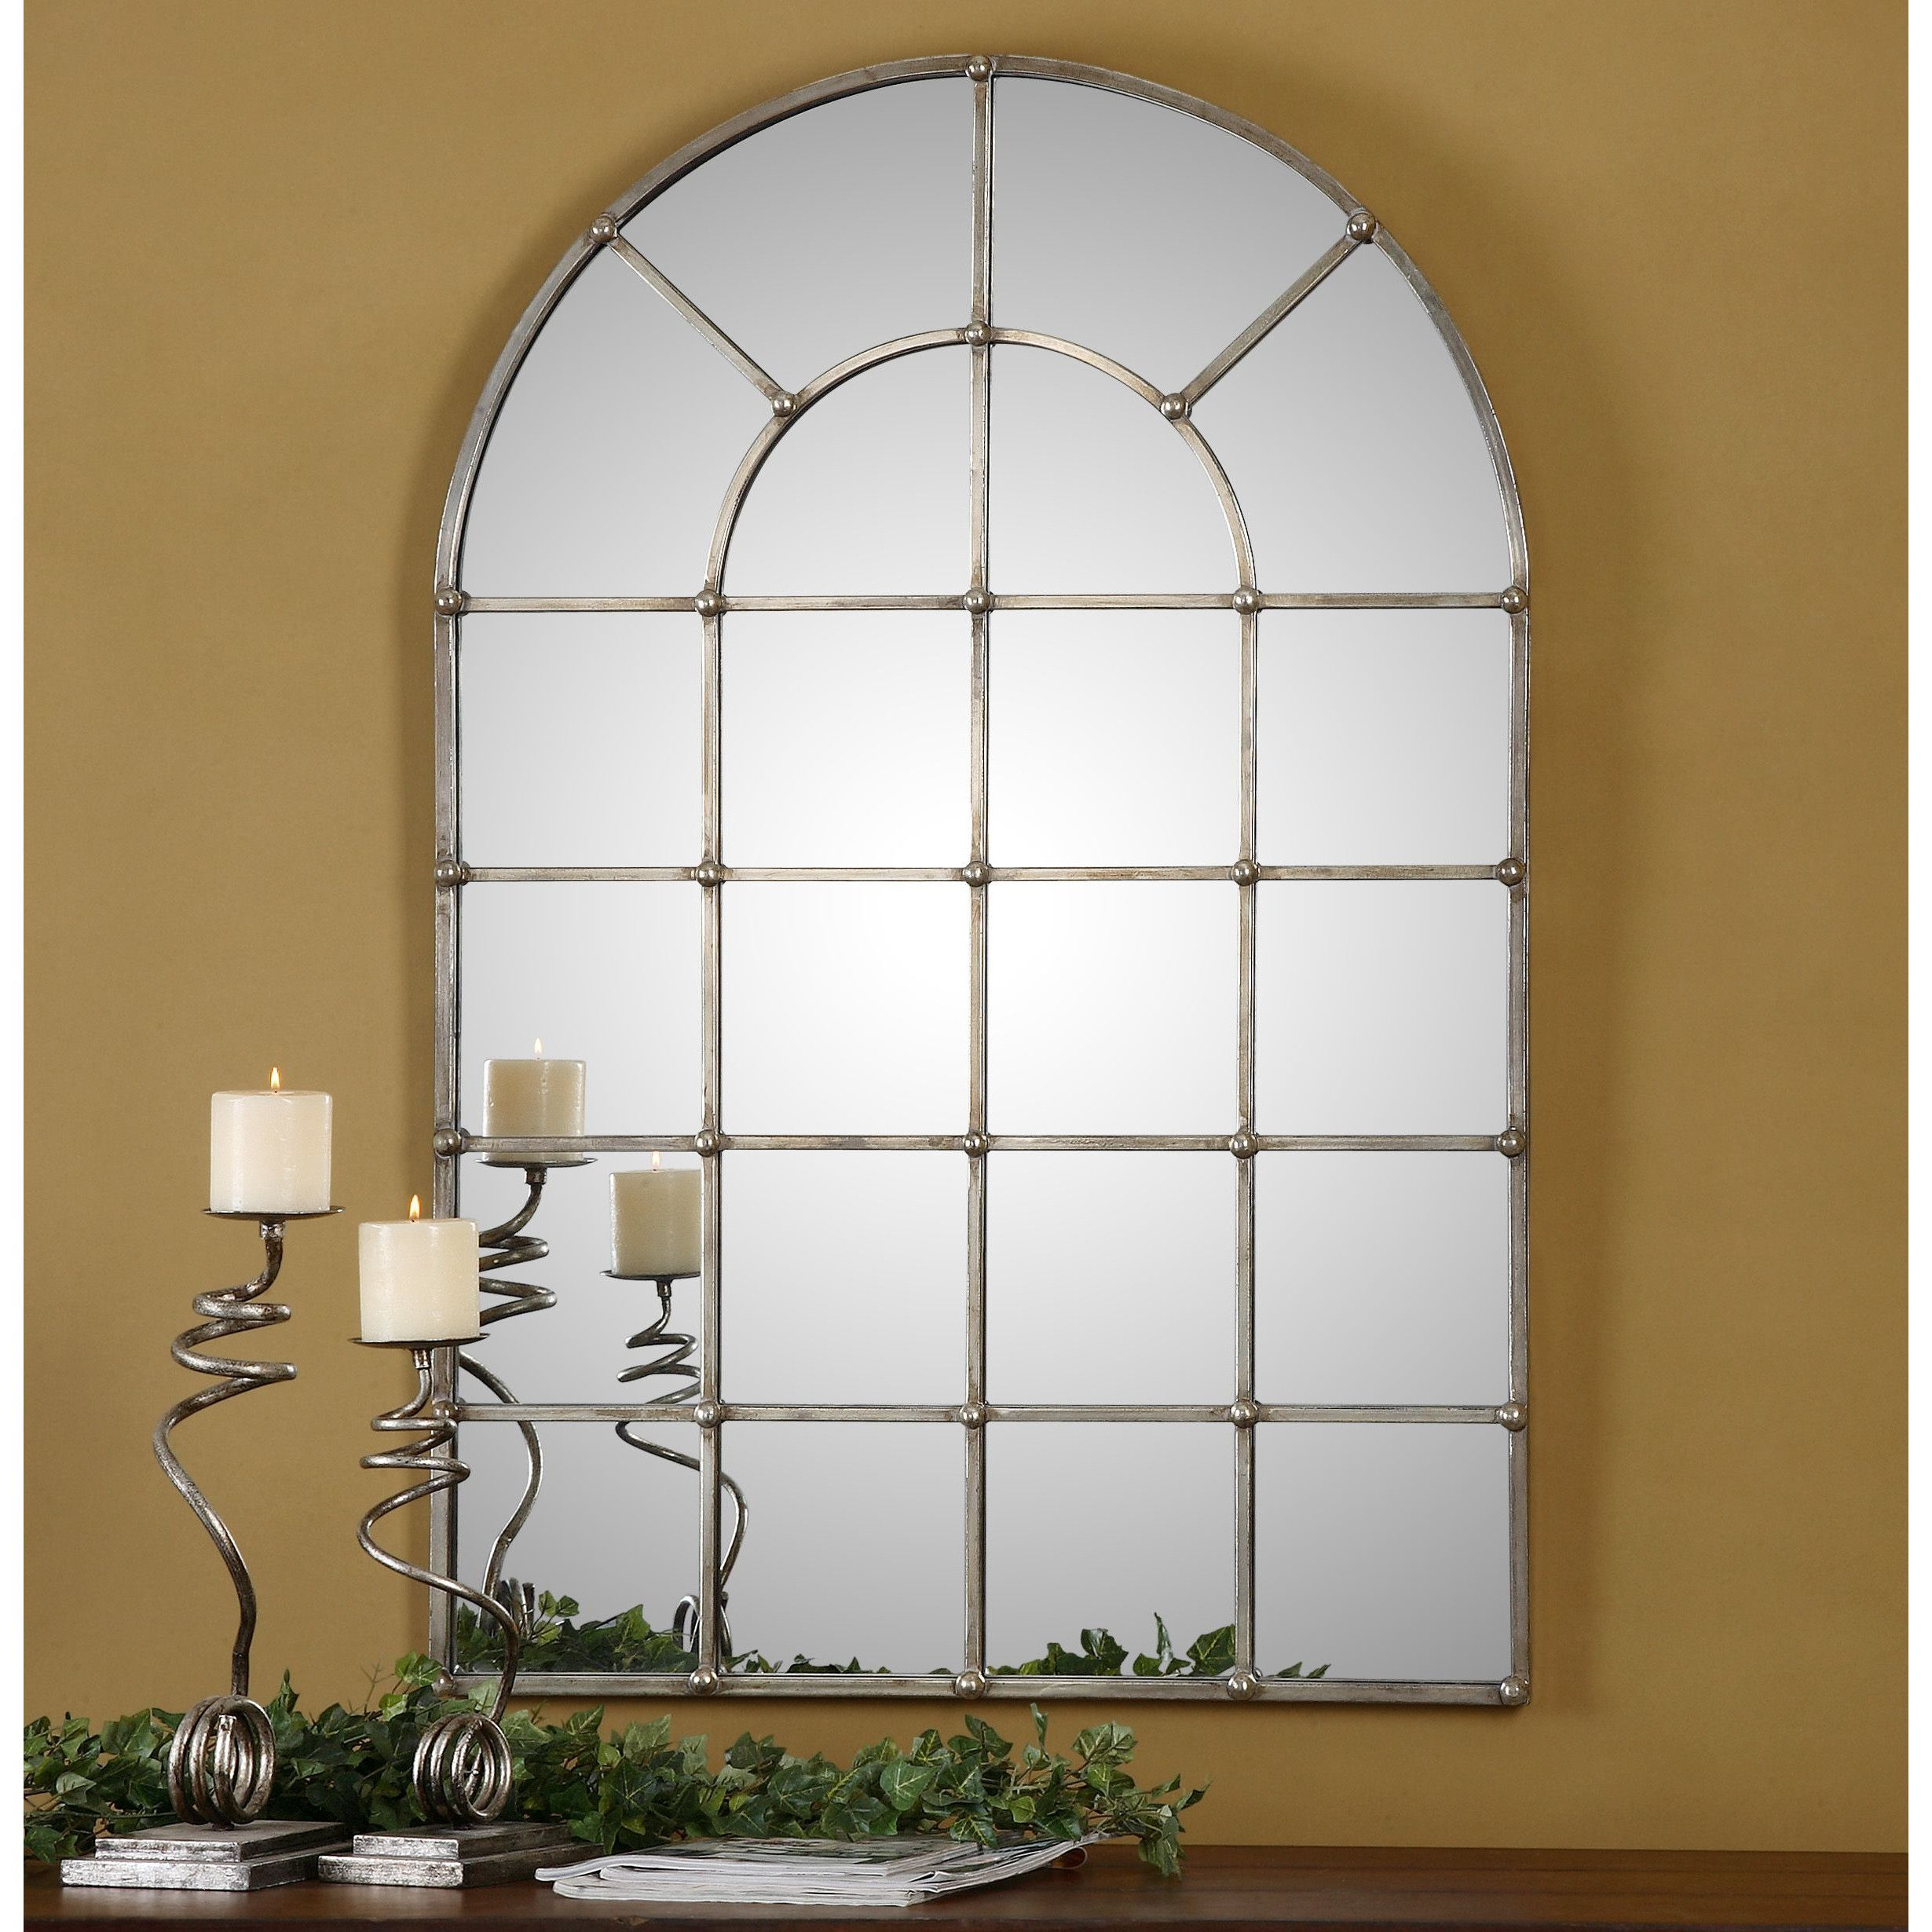 Wayfair Wall Mirrors uttermost barwell arch window mirror & reviews | wayfair | stacy